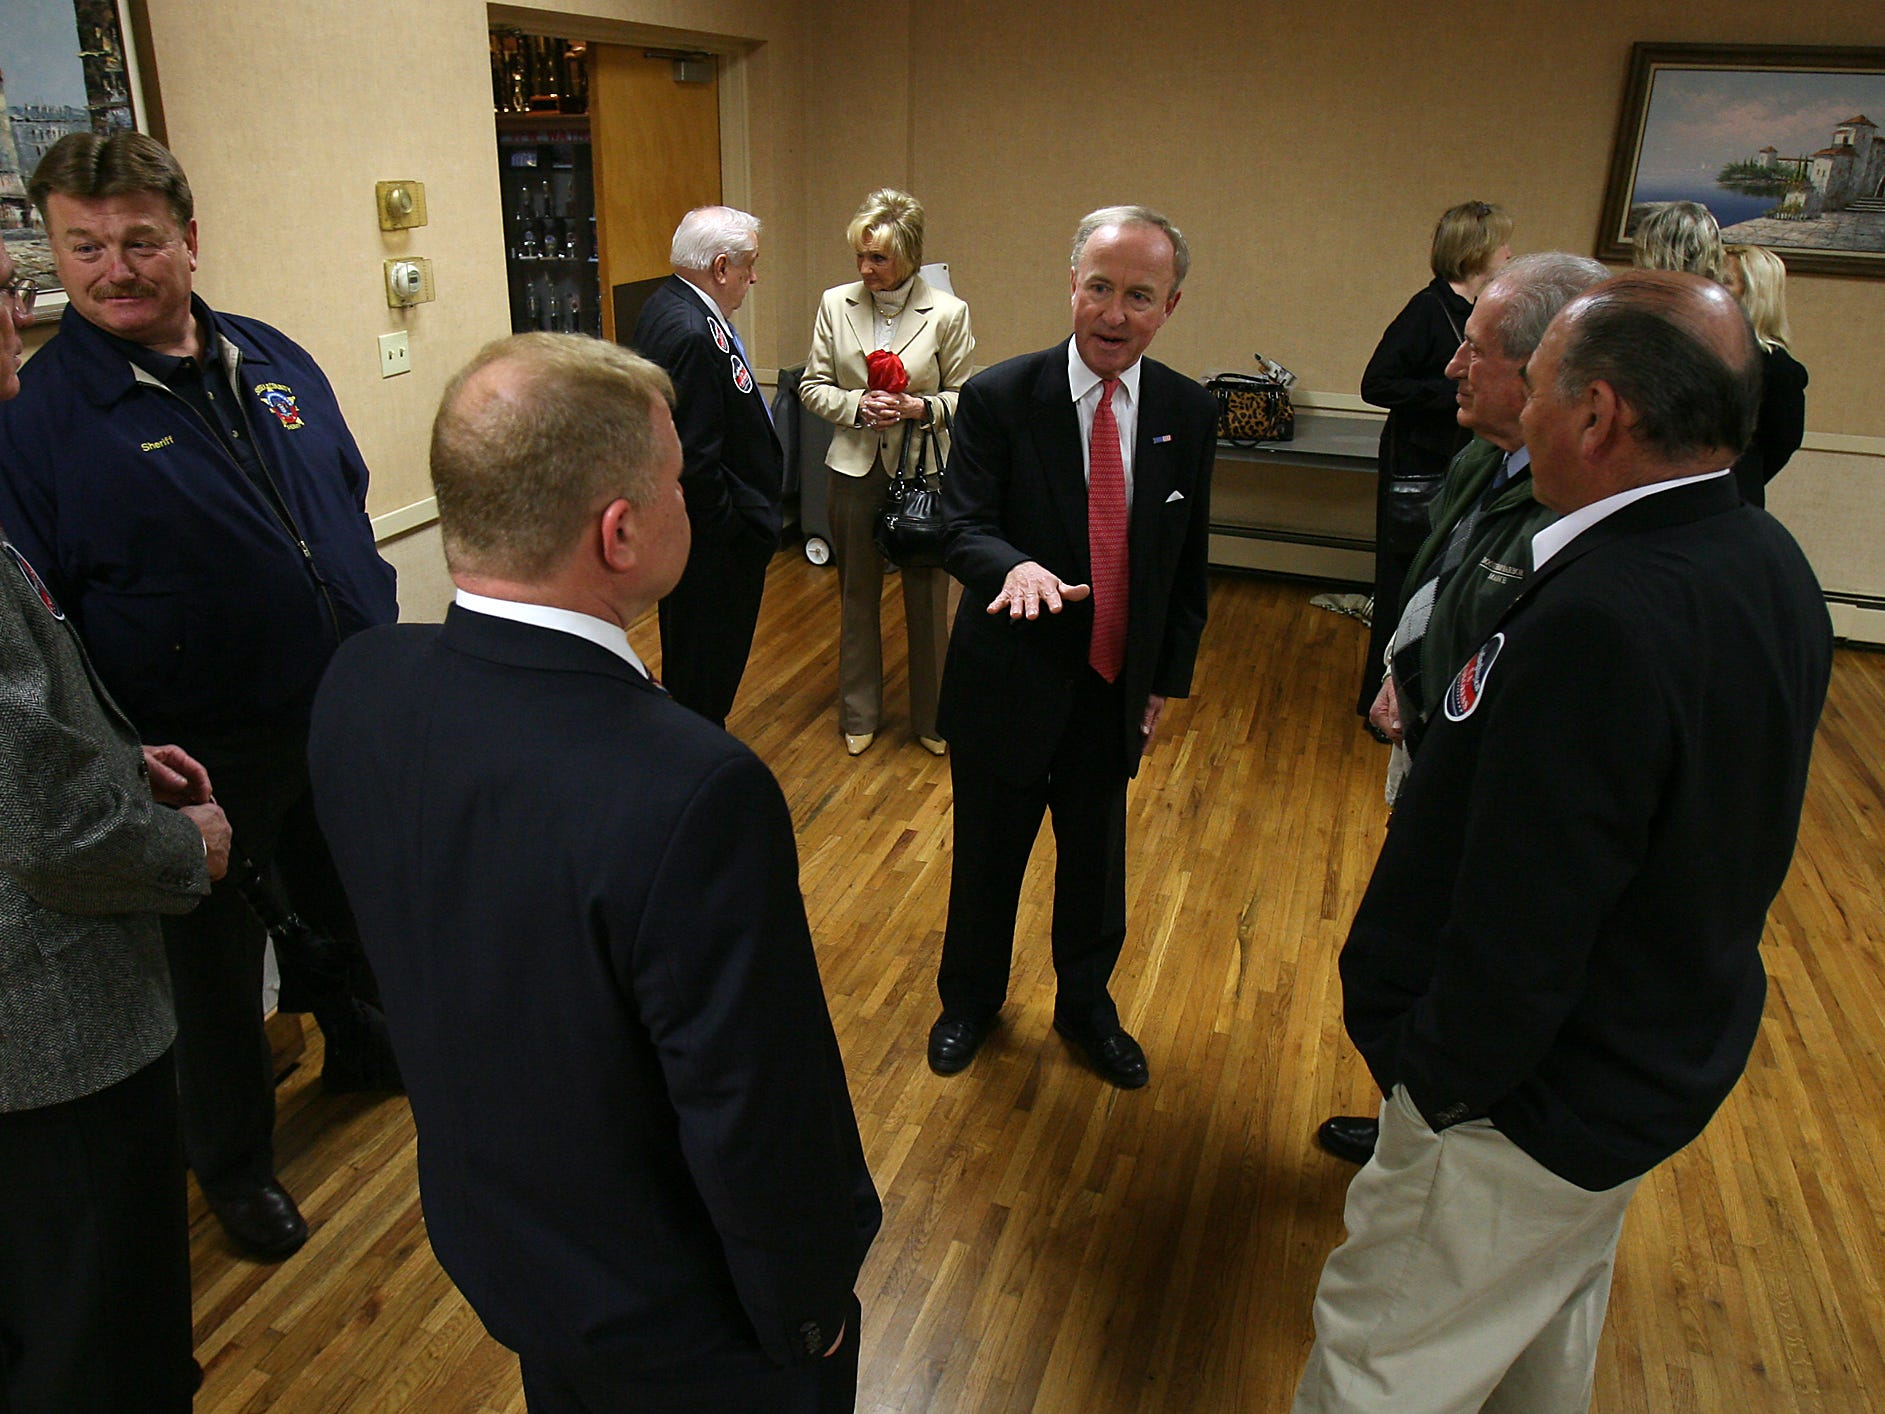 Morris Plains, March 22, 2010--Congressman Rodney Frelinghuysen, c, Talks to supporters at the Morris Plains VFW Post 3401 before he announced he would be running for re-election.